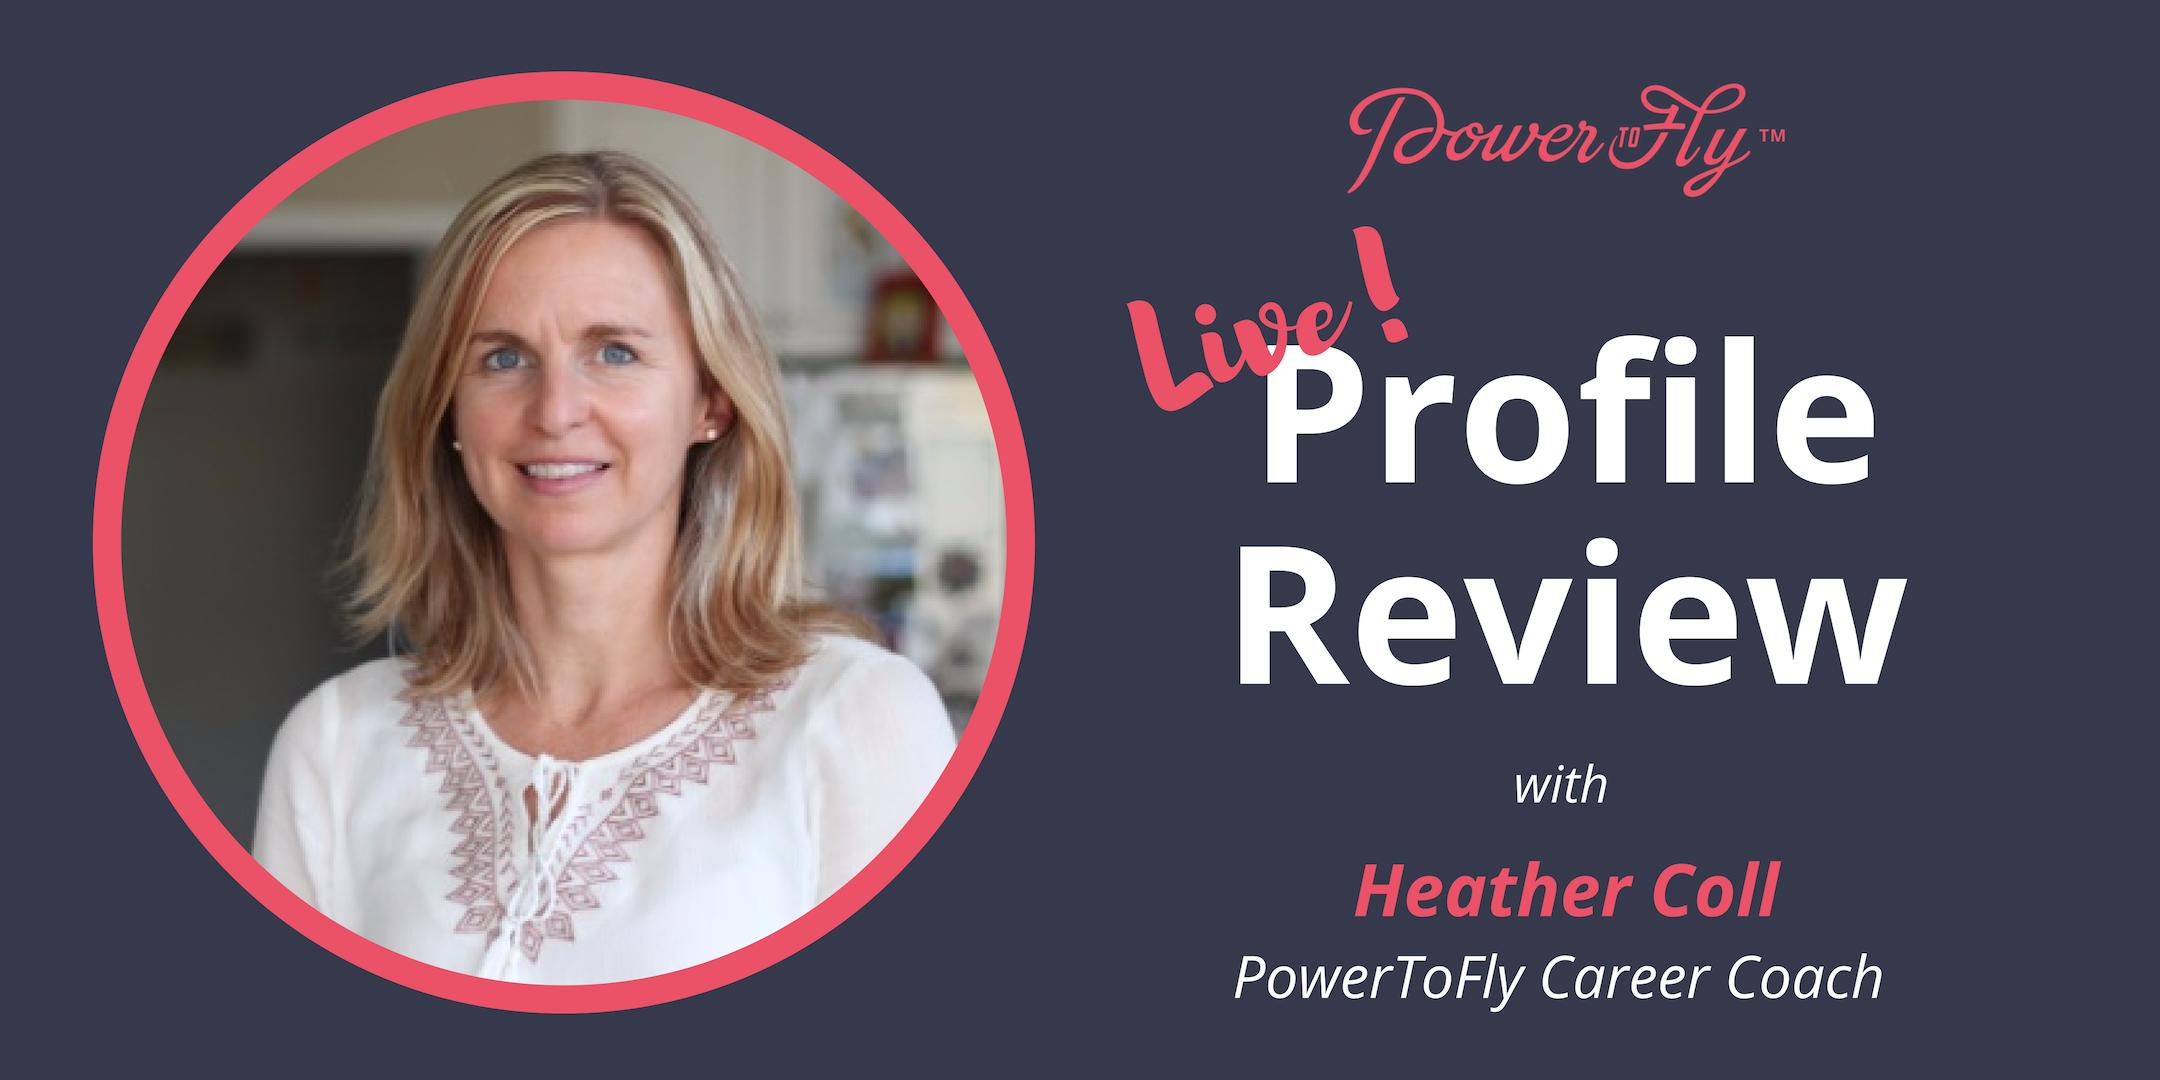 *LIVE* Profile Review With PowerToFly Career Coach 7/18